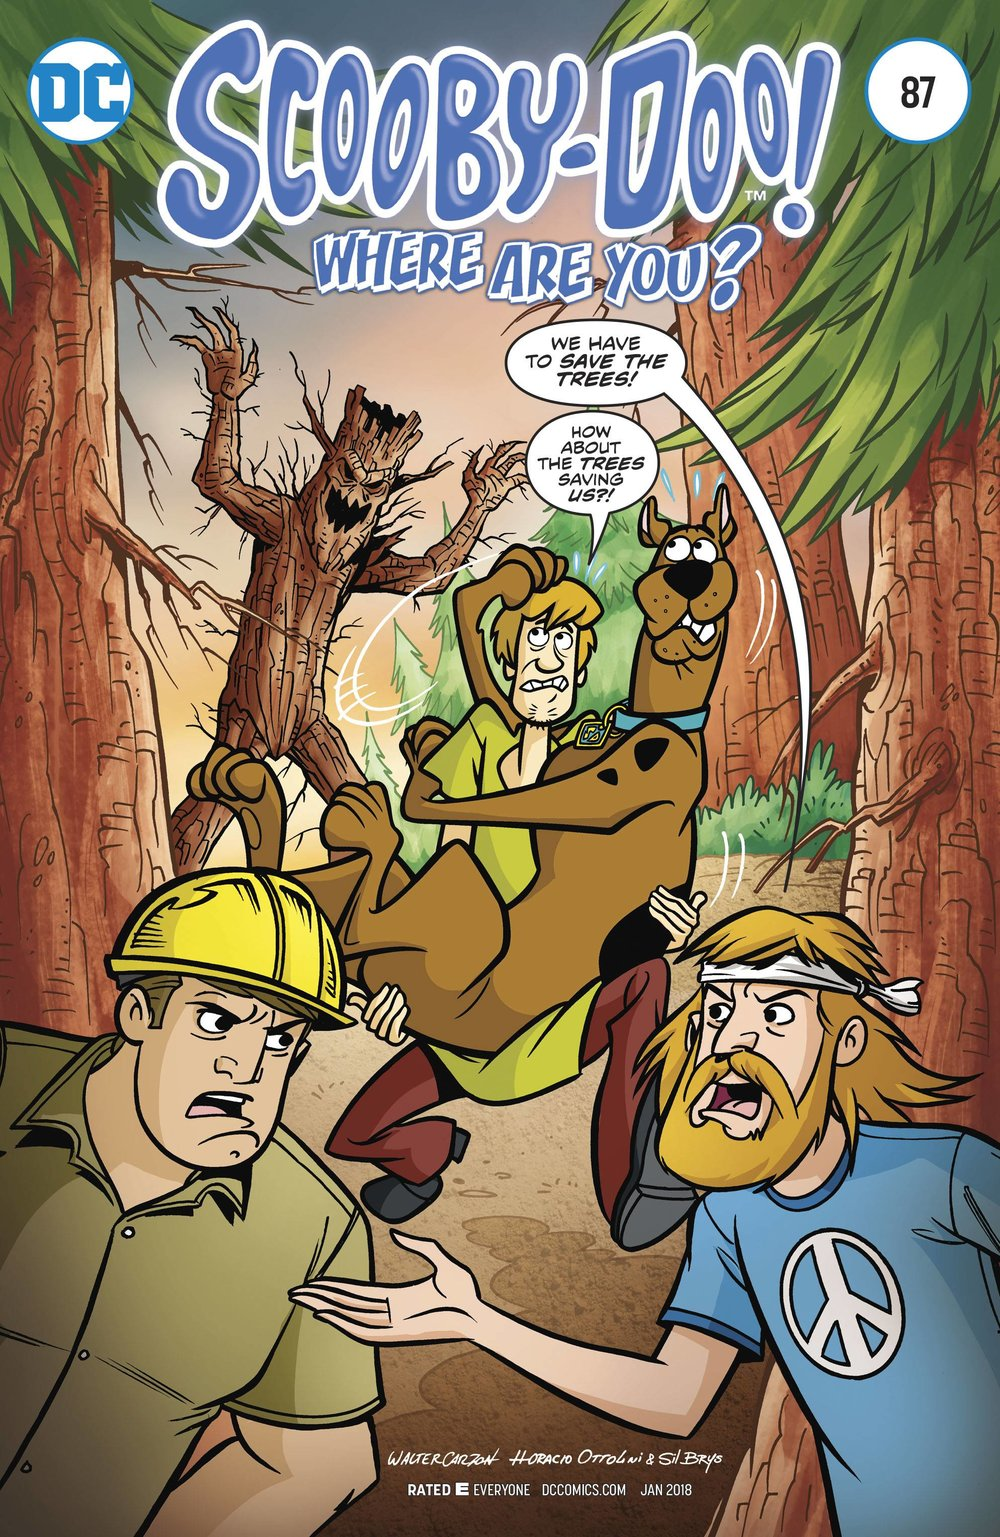 SCOOBY DOO WHERE ARE YOU 87.jpg